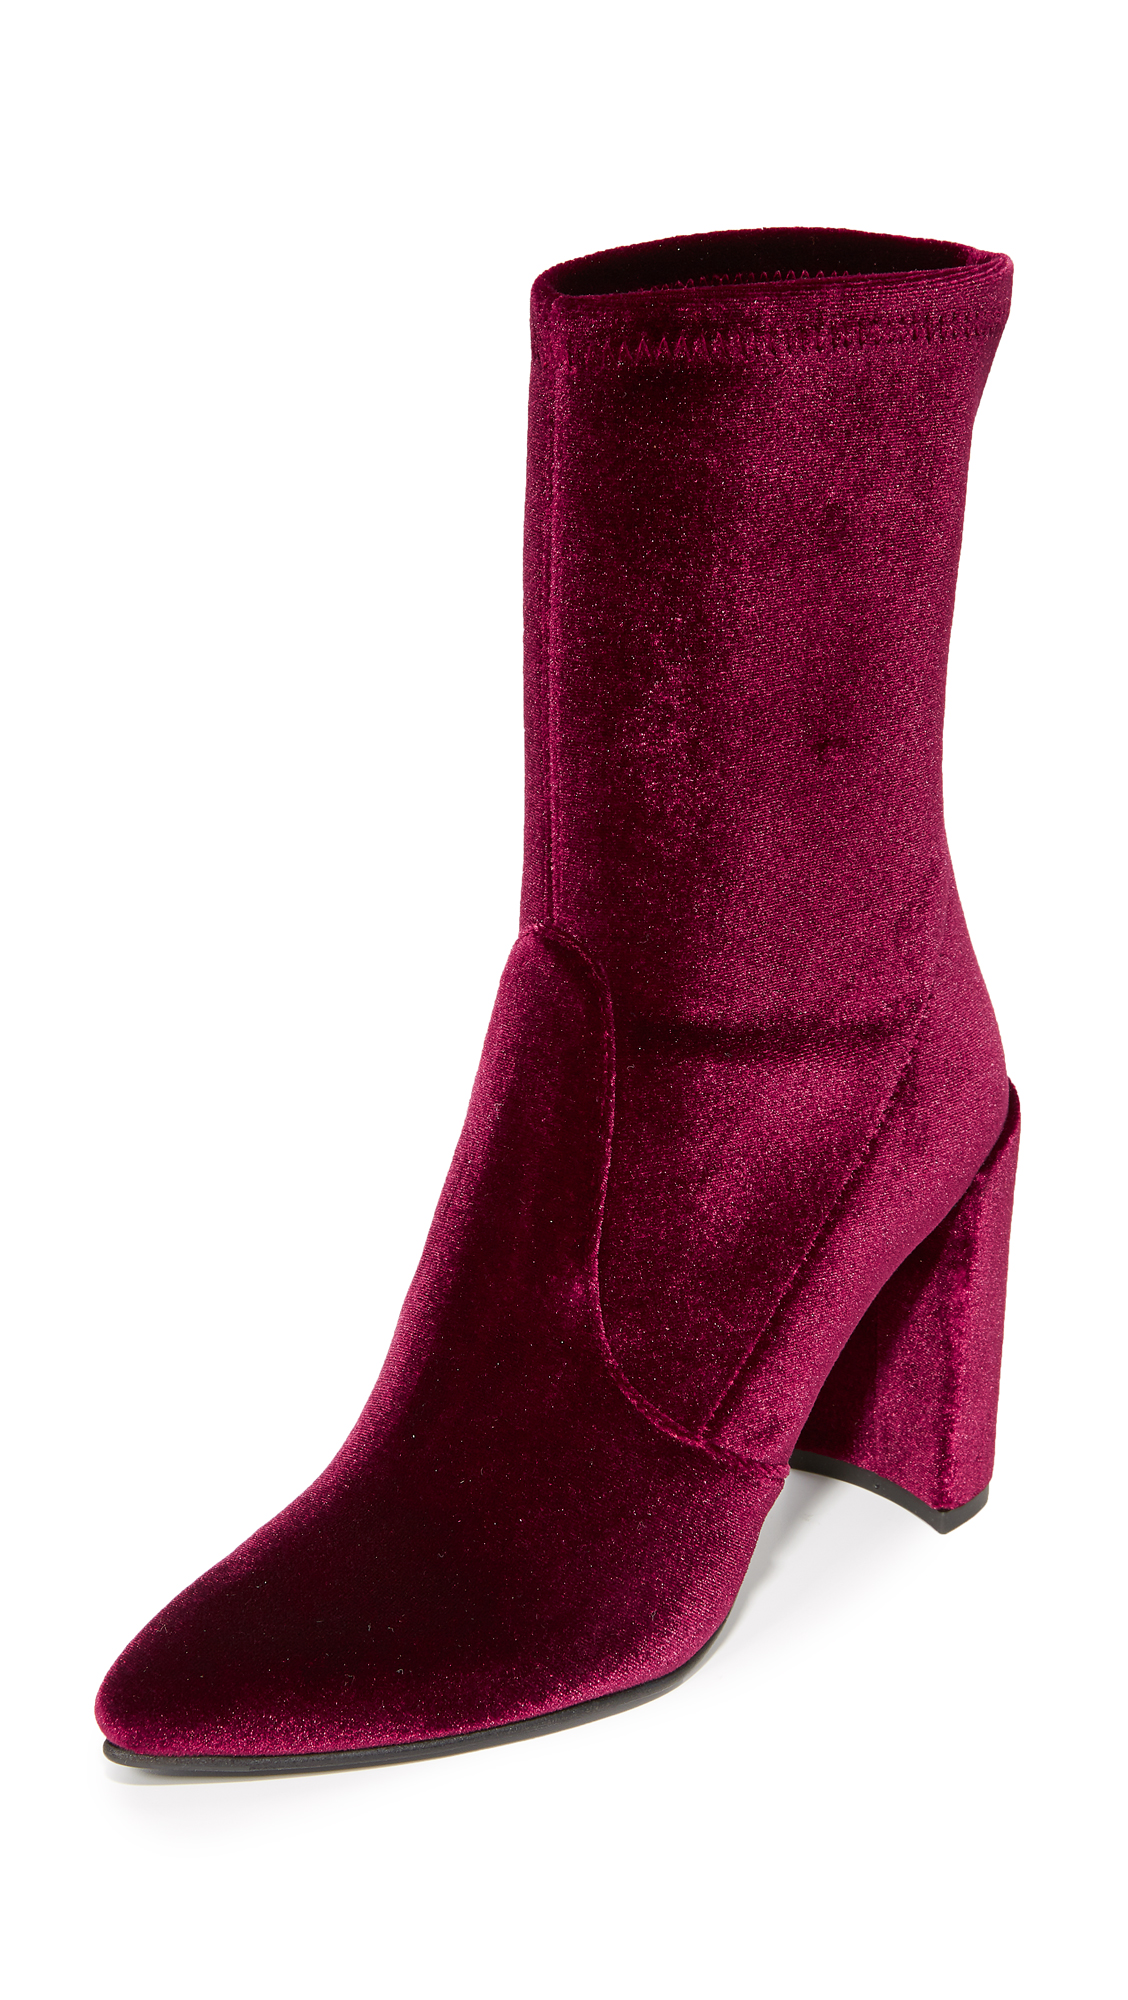 Stuart Weitzman Clinger Stretch Booties - Bordeaux